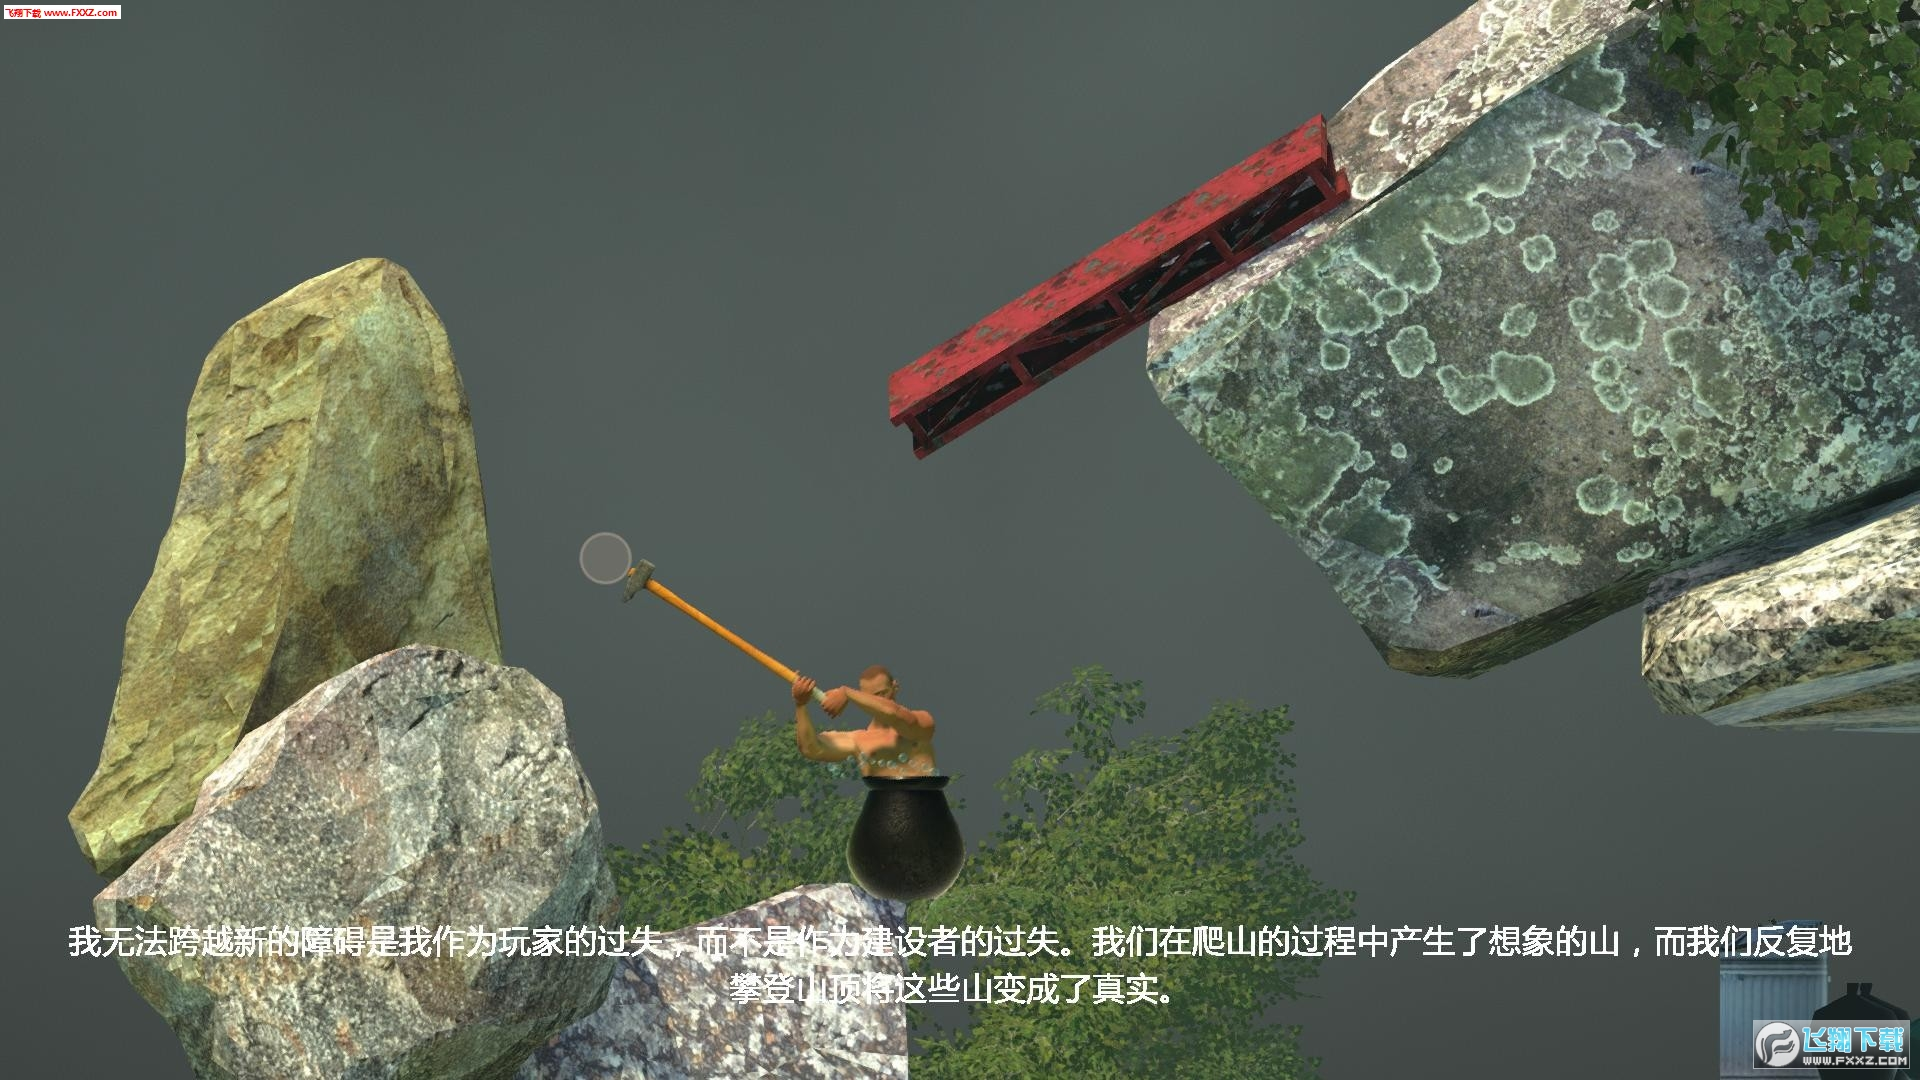 Getting Over It with Bennett Foddy截图3